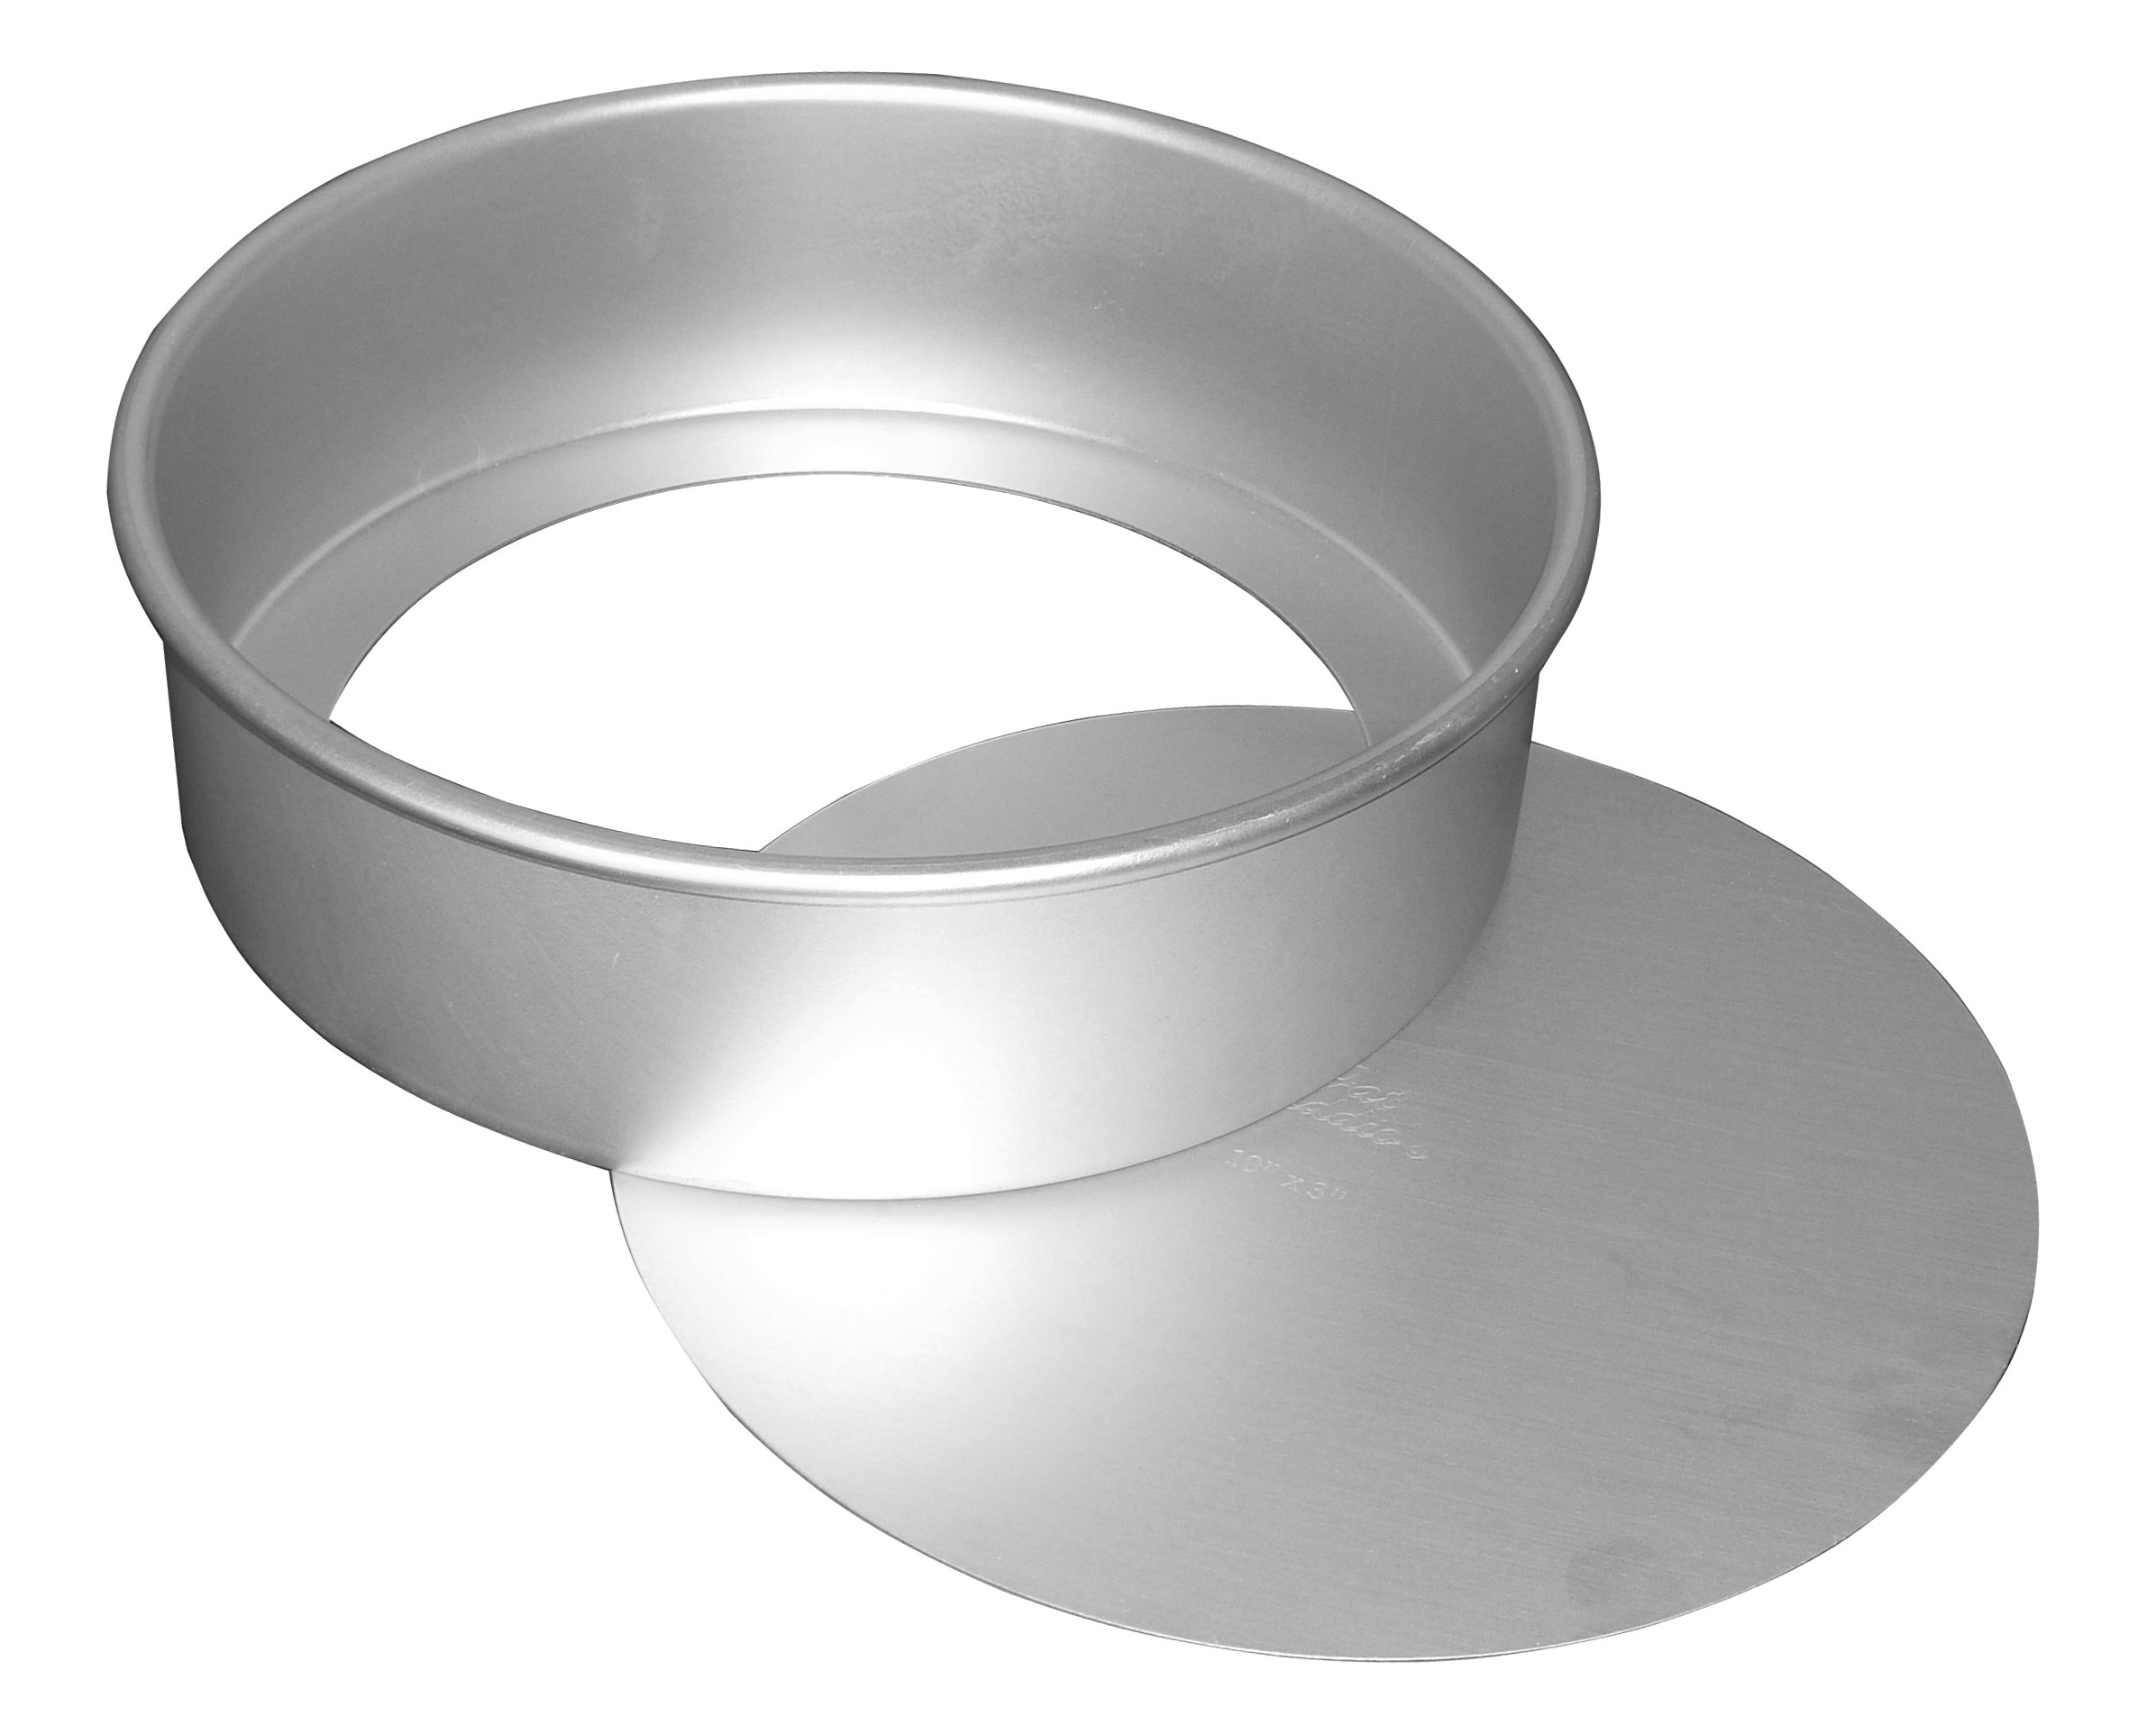 Fat Daddio's Anodized Aluminum Round Cheesecake Pan with Removable Bottom, 7 Inch x 3 Inch